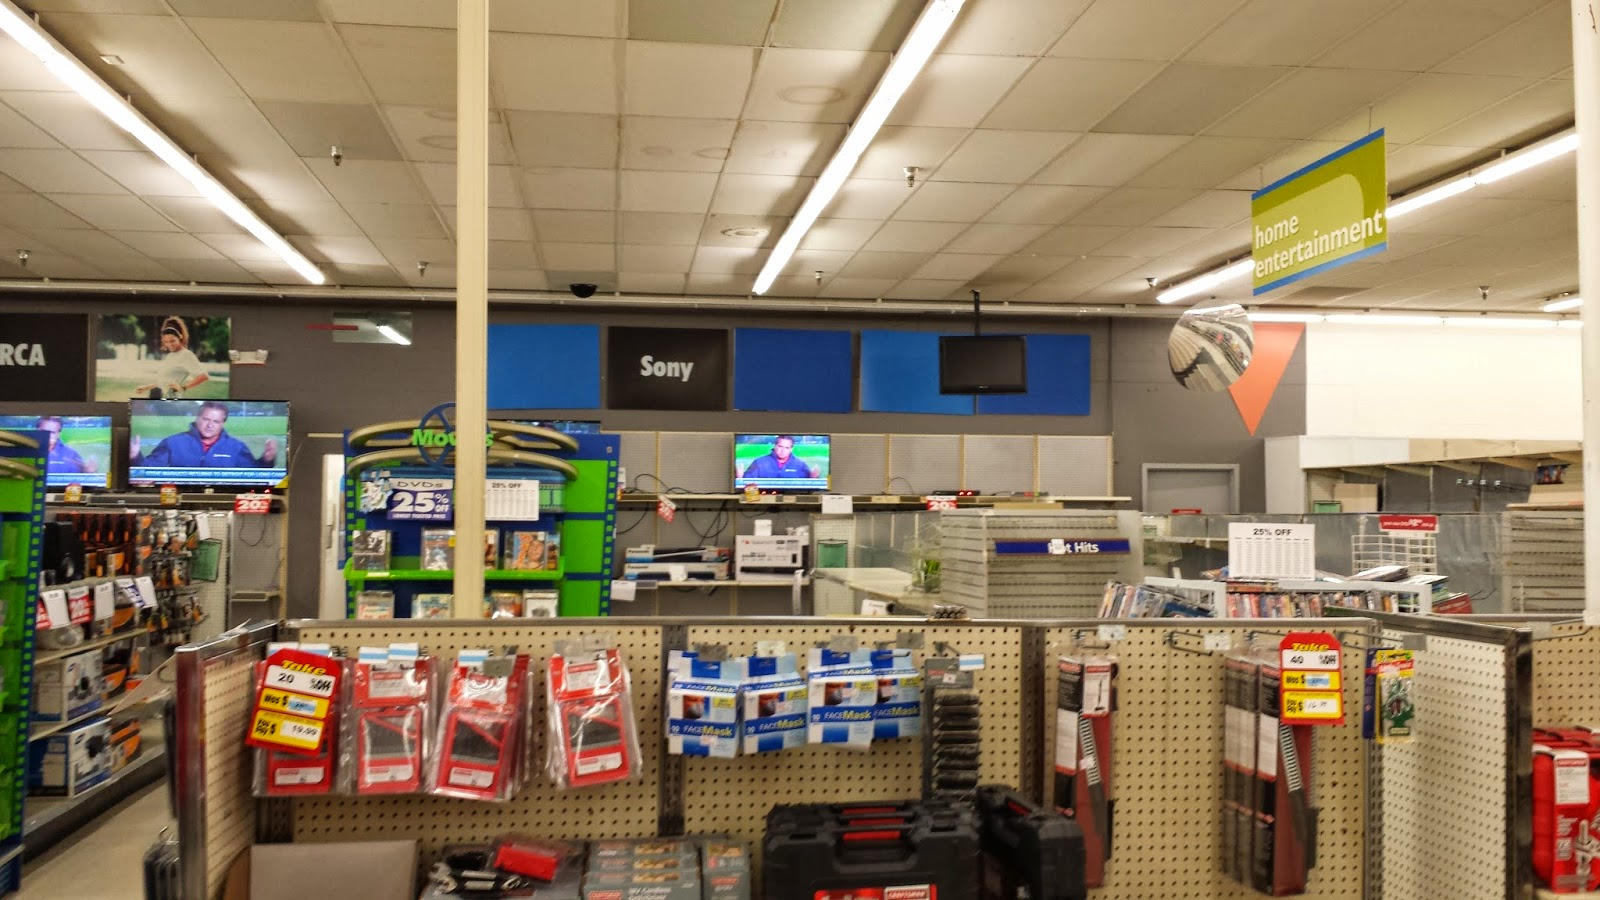 Sears carries standard and 3-D LED TVs, so you can find one that creates the perfect viewing experience. Add the high quality audio of a soundbar and your home theater will be complete. The right size TV will ensure everyone in the room gets a great seat. For large rooms, Sears has HD LED TVs ranging upwards of 60 inches.